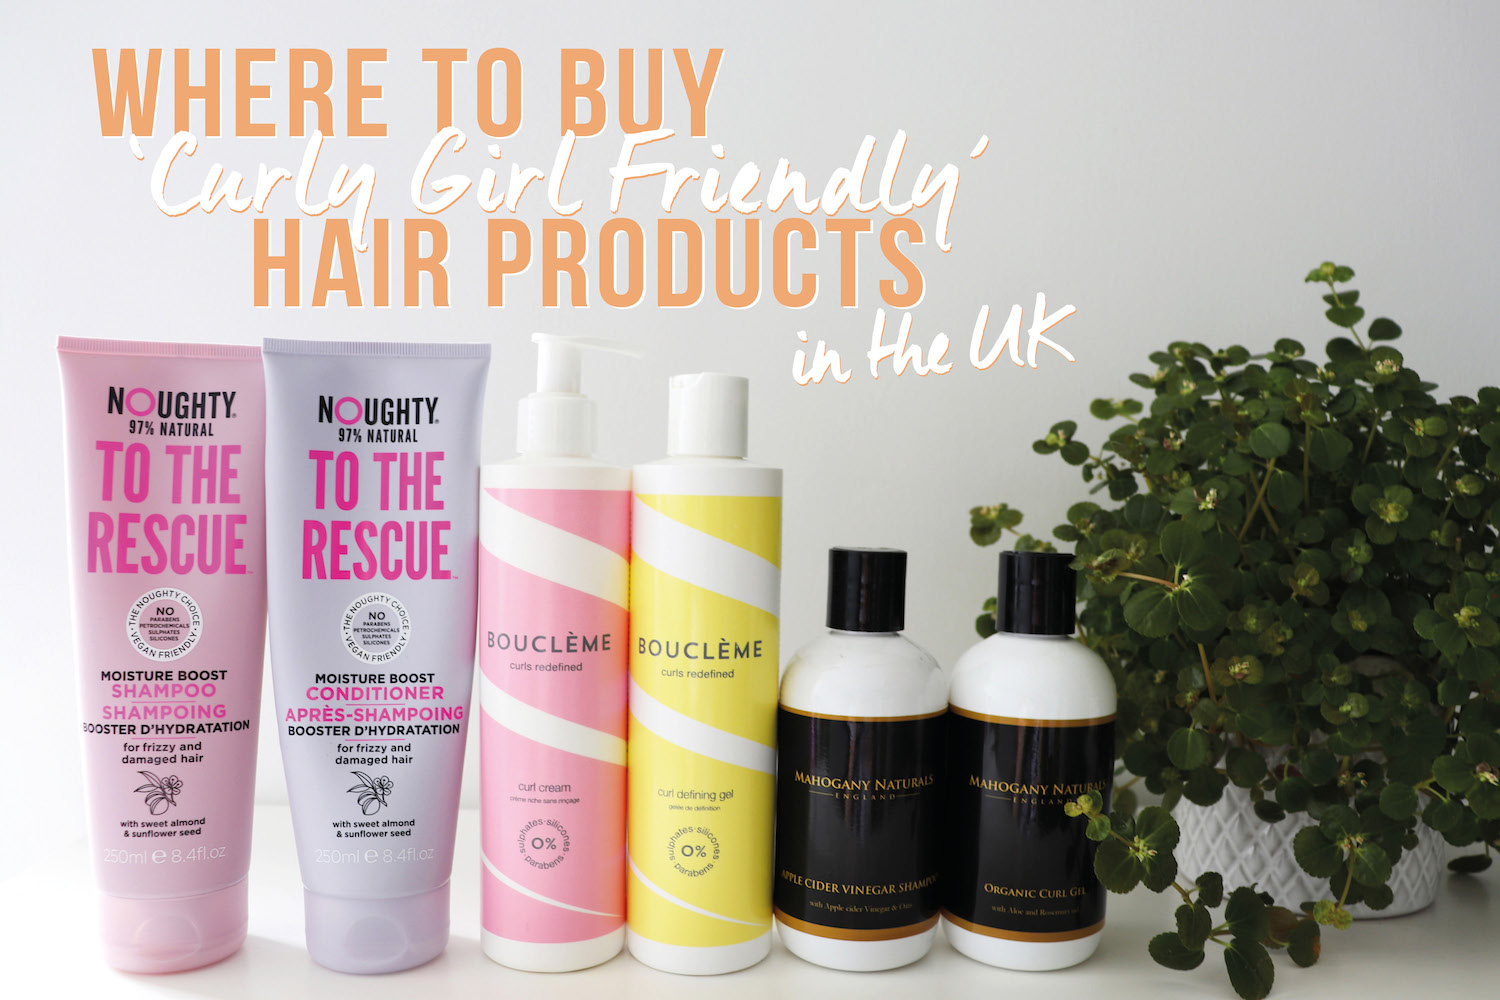 Where to Buy 'Curly Girl Friendly' Hair Products in the UK   HanzCurls